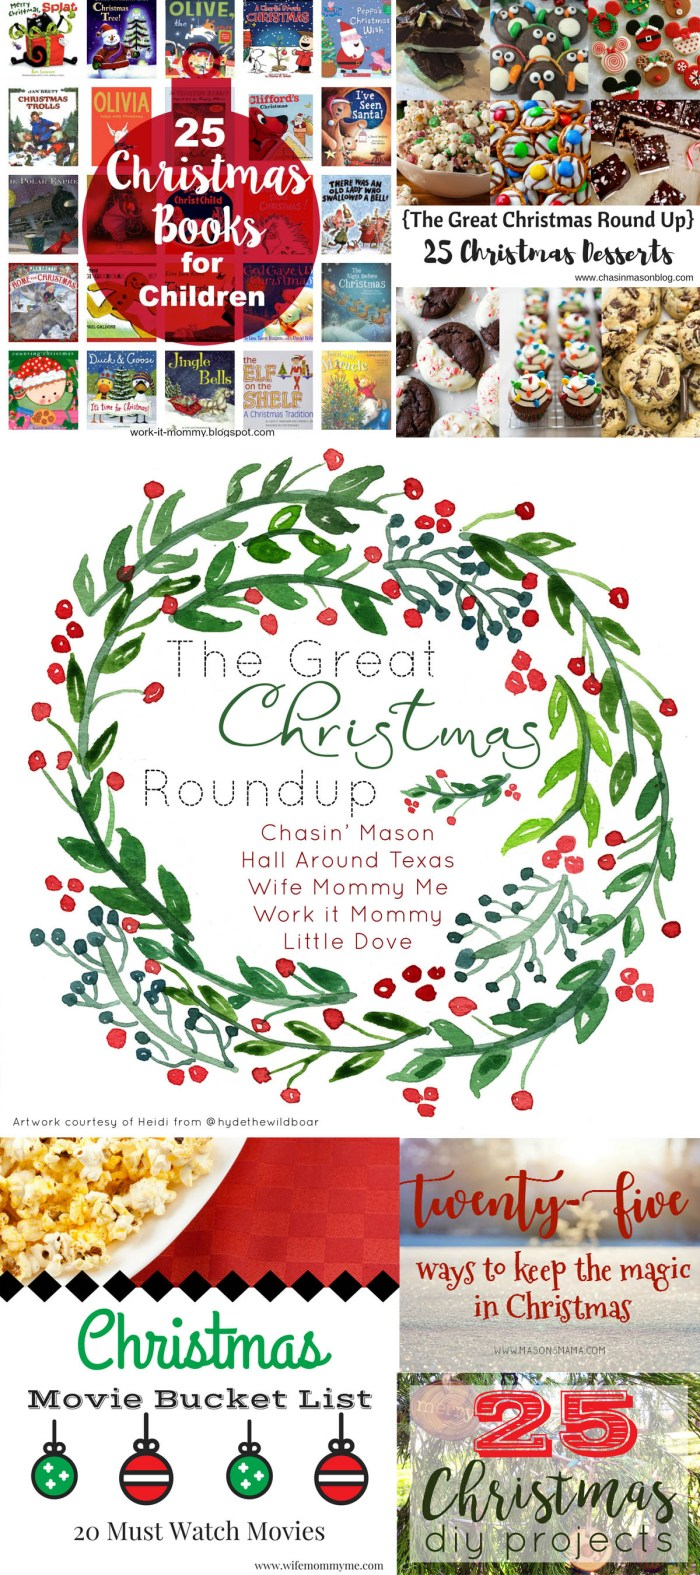 The Great Christmas Roundup